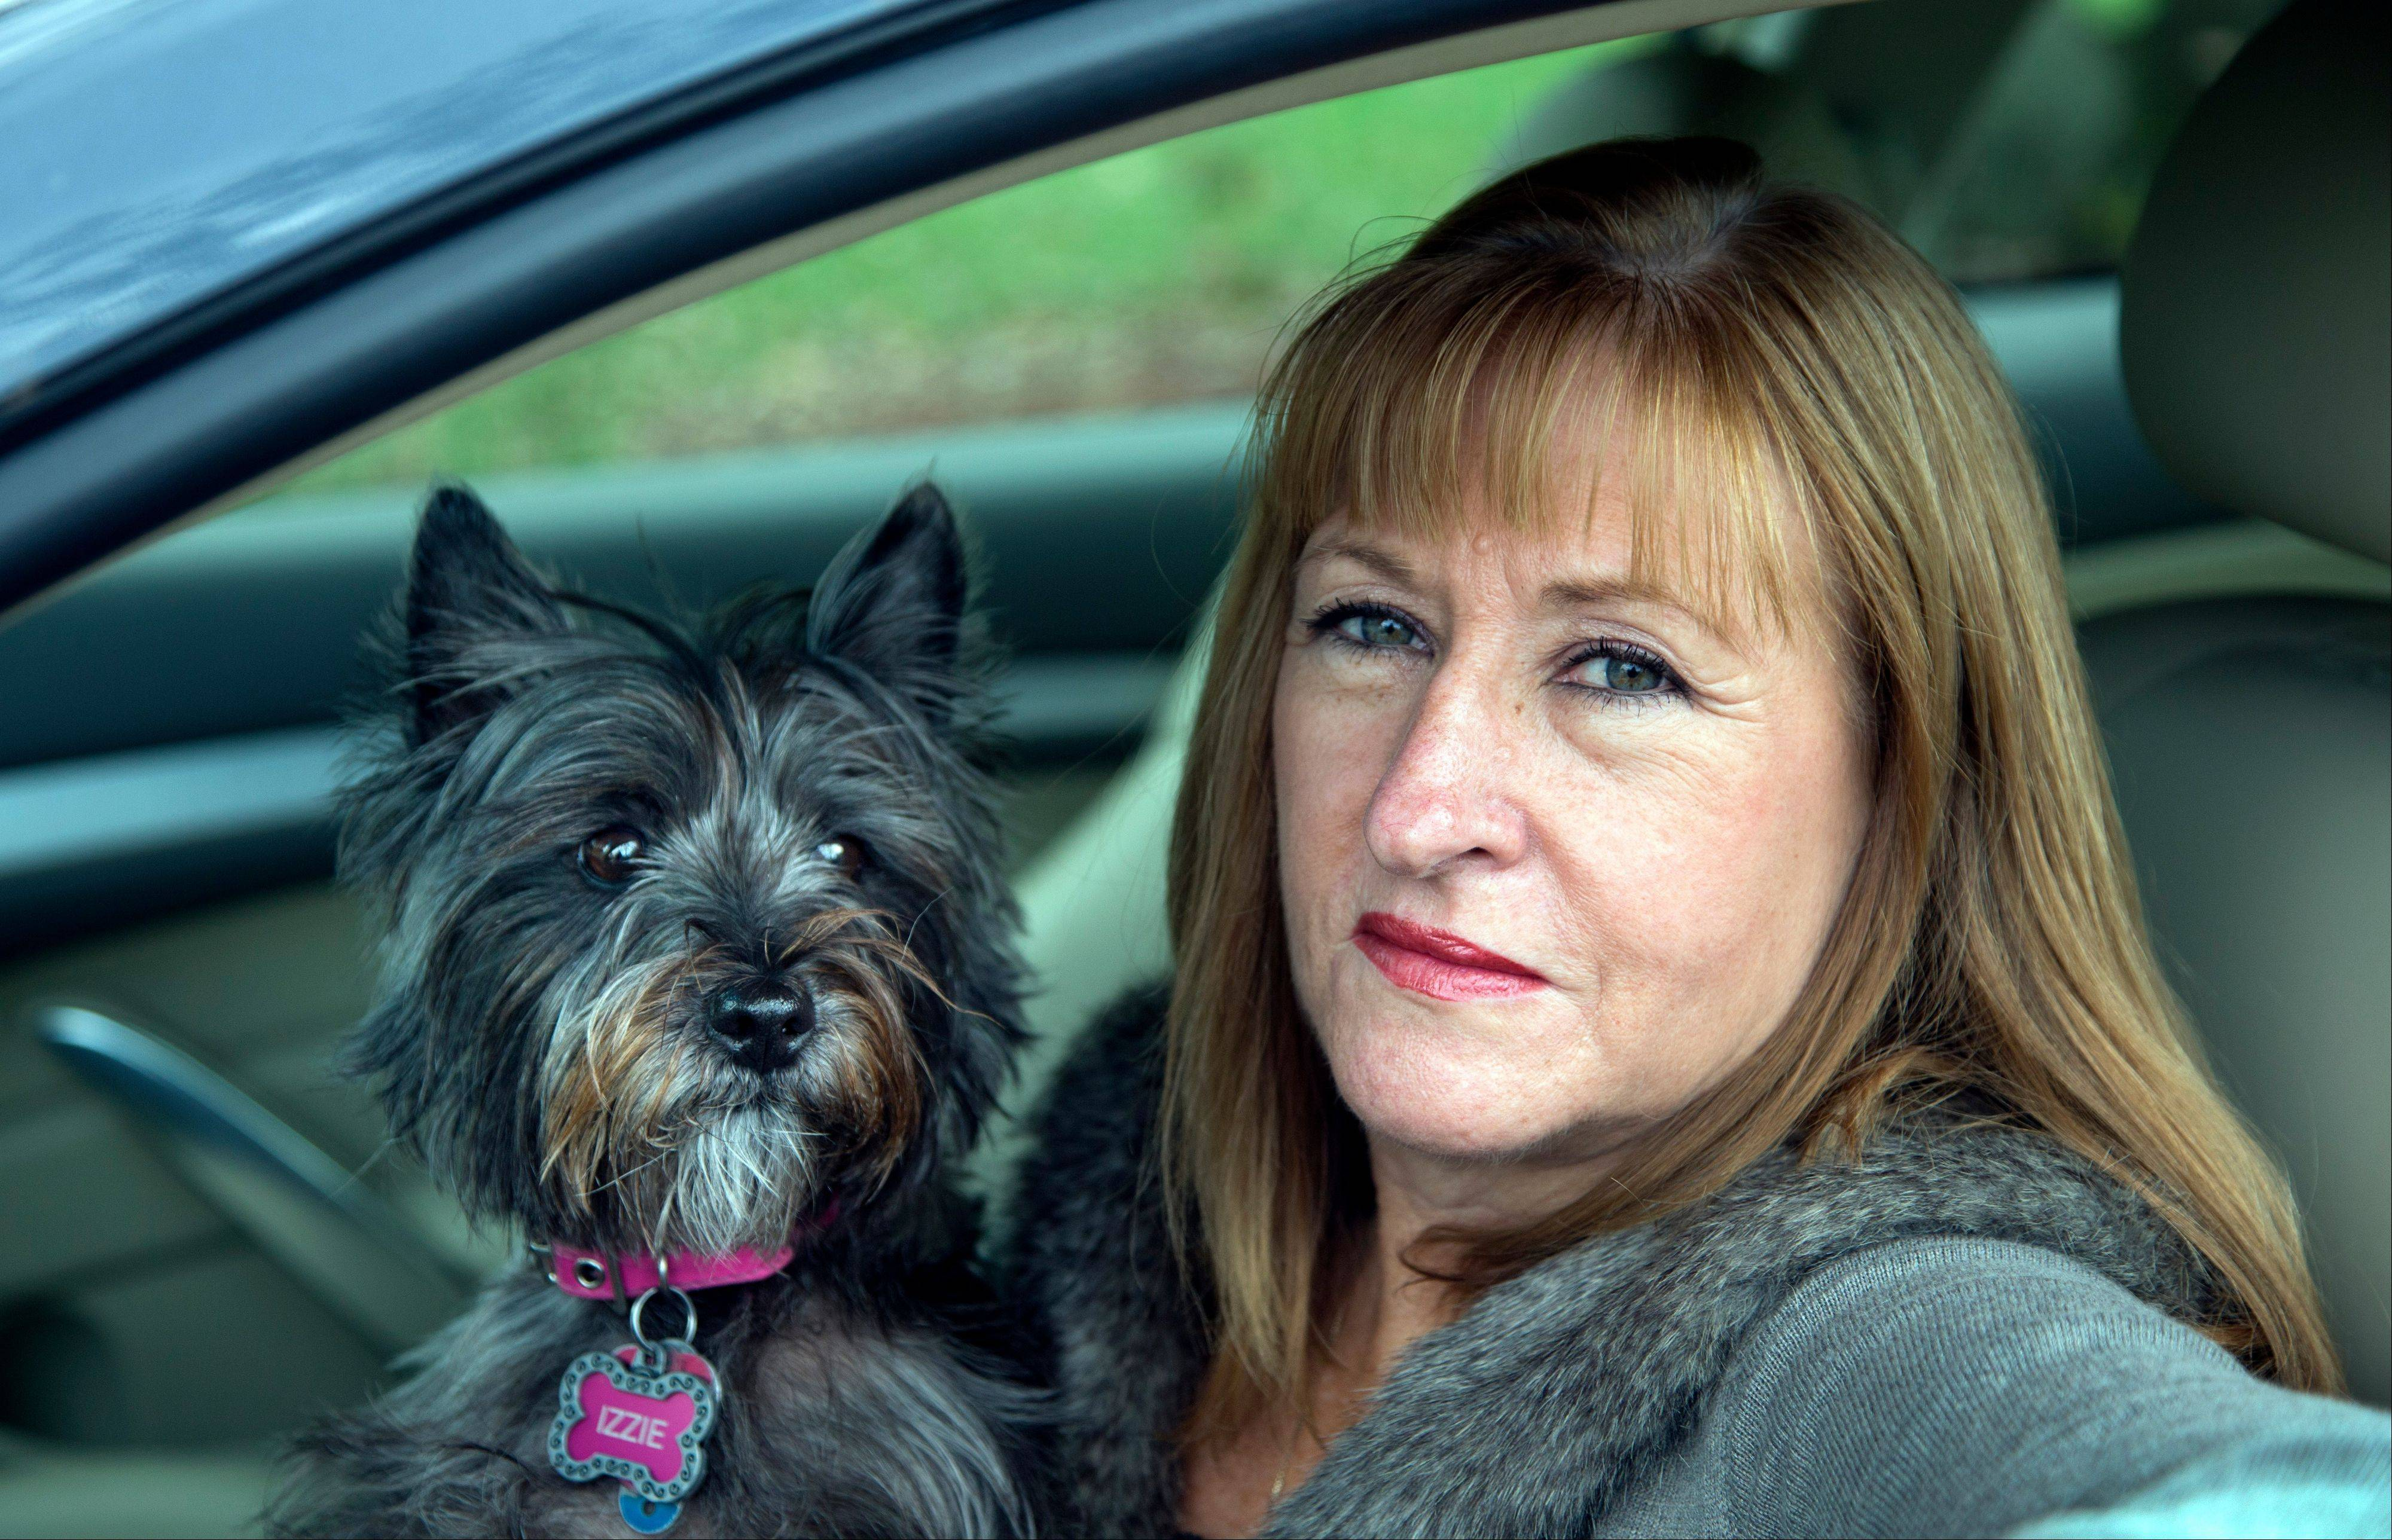 In this photo taken Nov. 2, 2012, Diane Spitaliere and her pet dog Izzie sit in her car outside her house in Alexandria. Baby boomers, that giant population bubble born between 1946 and 1964, started driving at a young age and became more mobile than any generation before or since. Spitaliere, a 58-year-old who recently retired after working 38 years at the Federal Aviation Administration, said the idea of moving to a retirement or assisted living community �is just very unappealing to me.�